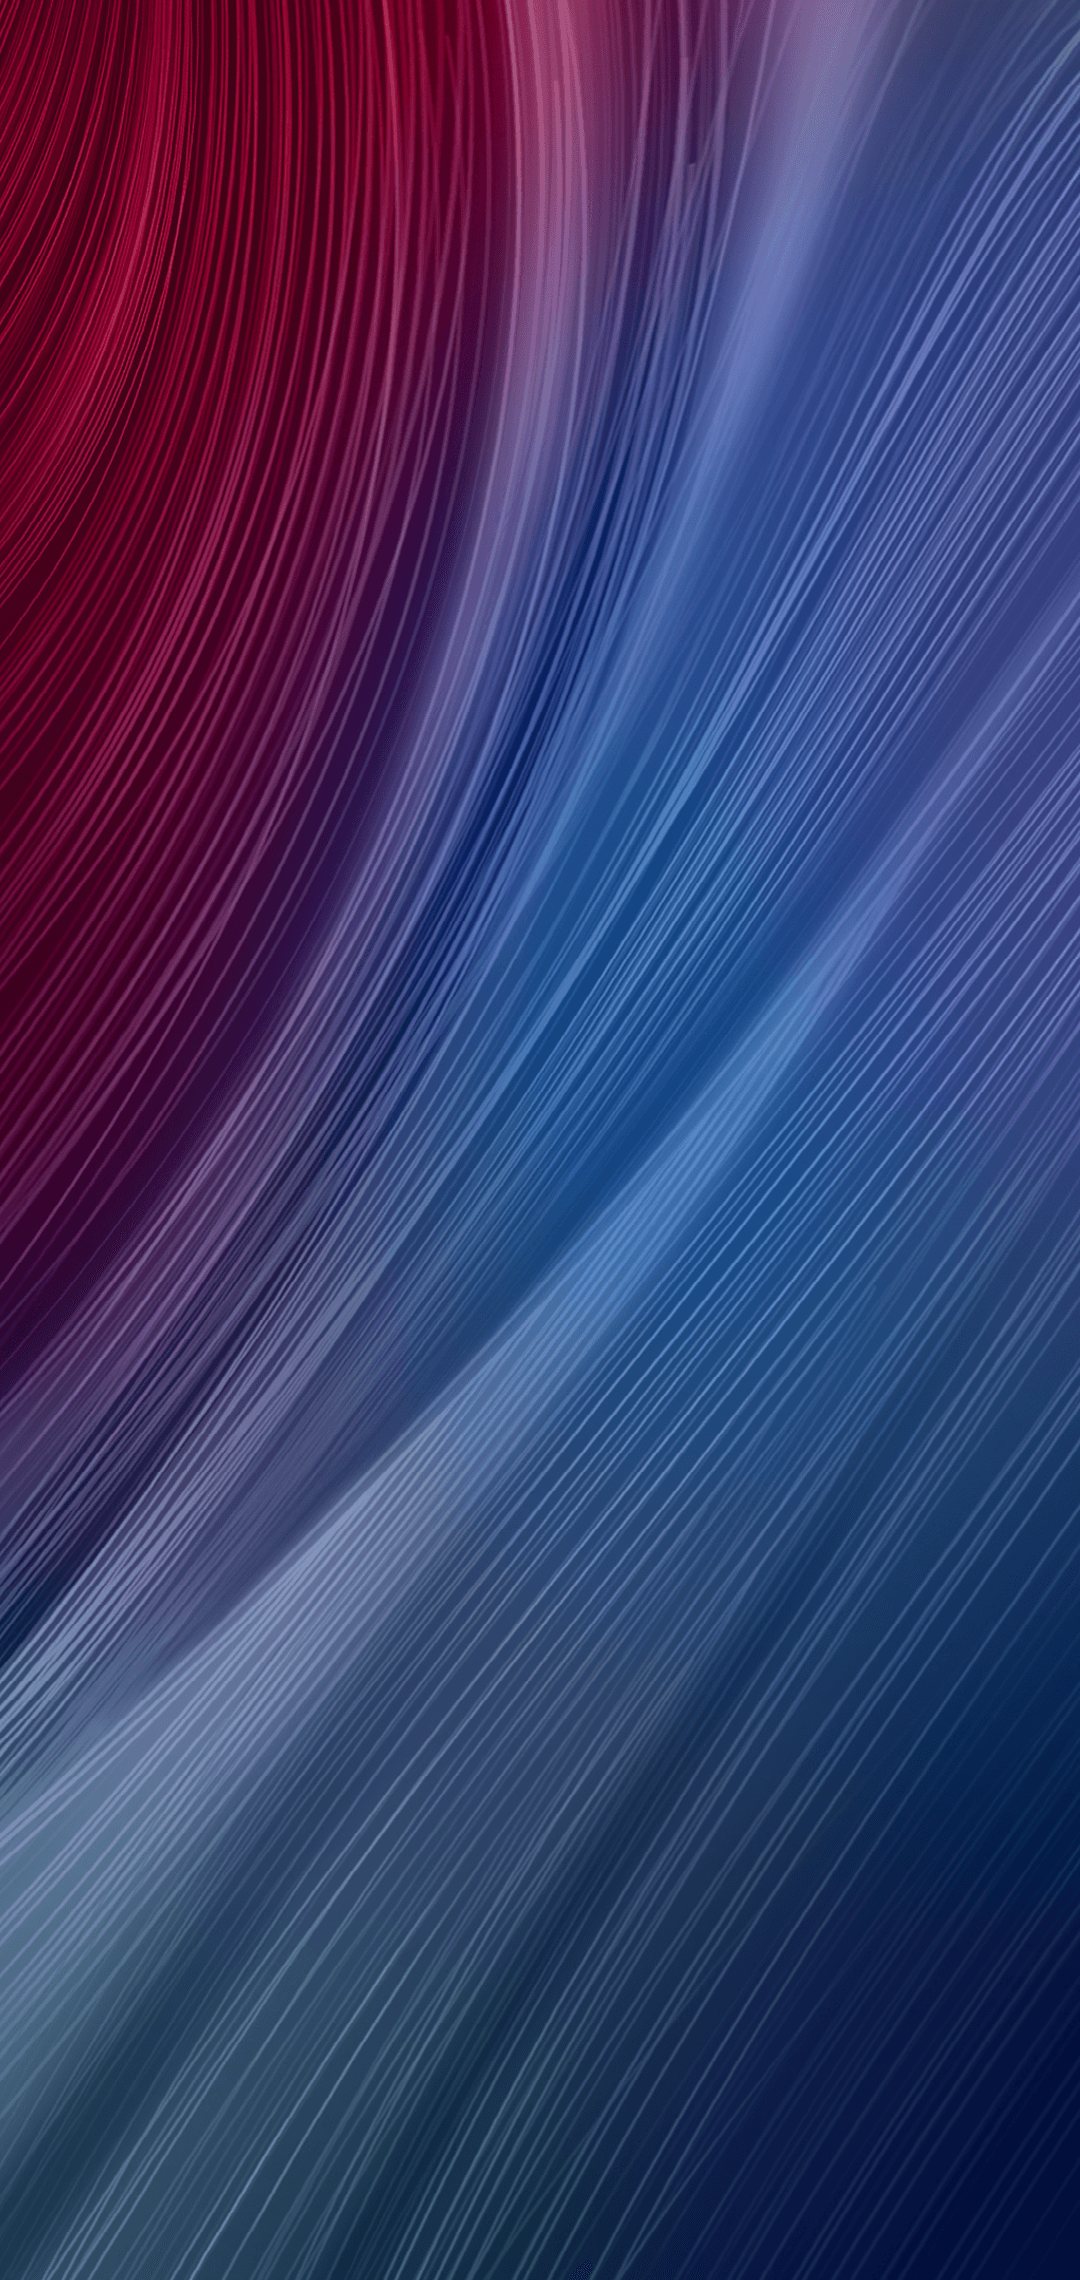 Download Redmi Note 7 Wallpapers [HD Backgrounds]